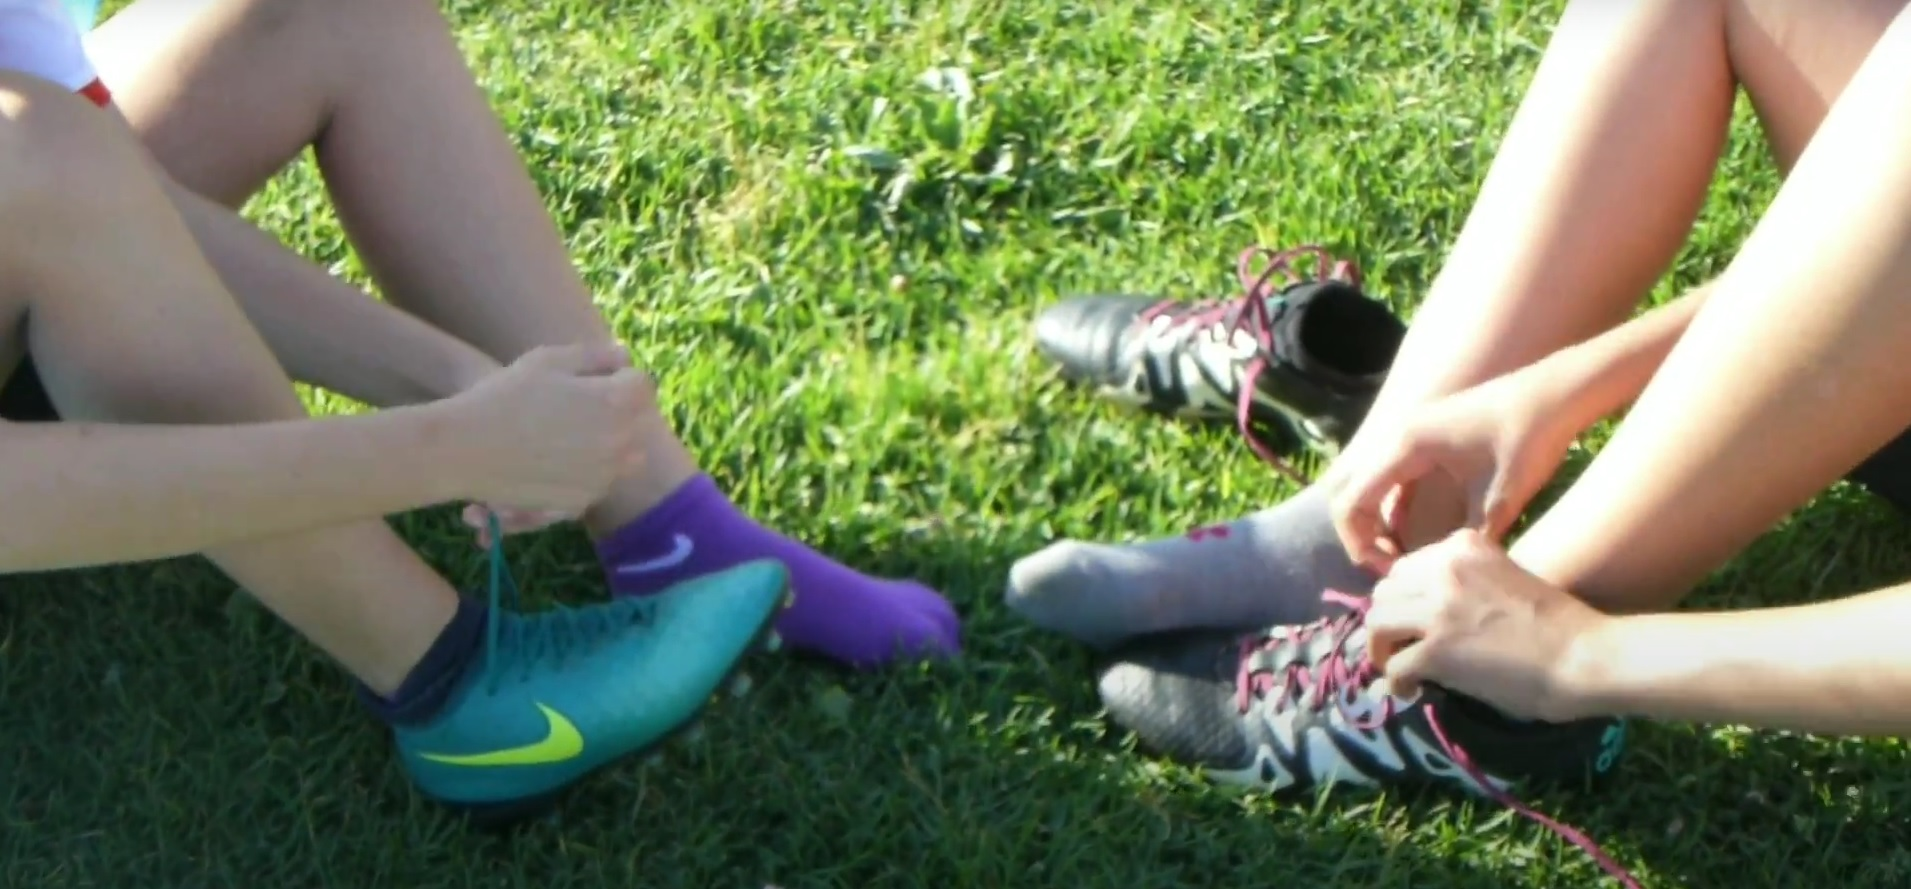 a picture of two kids tying their shoes